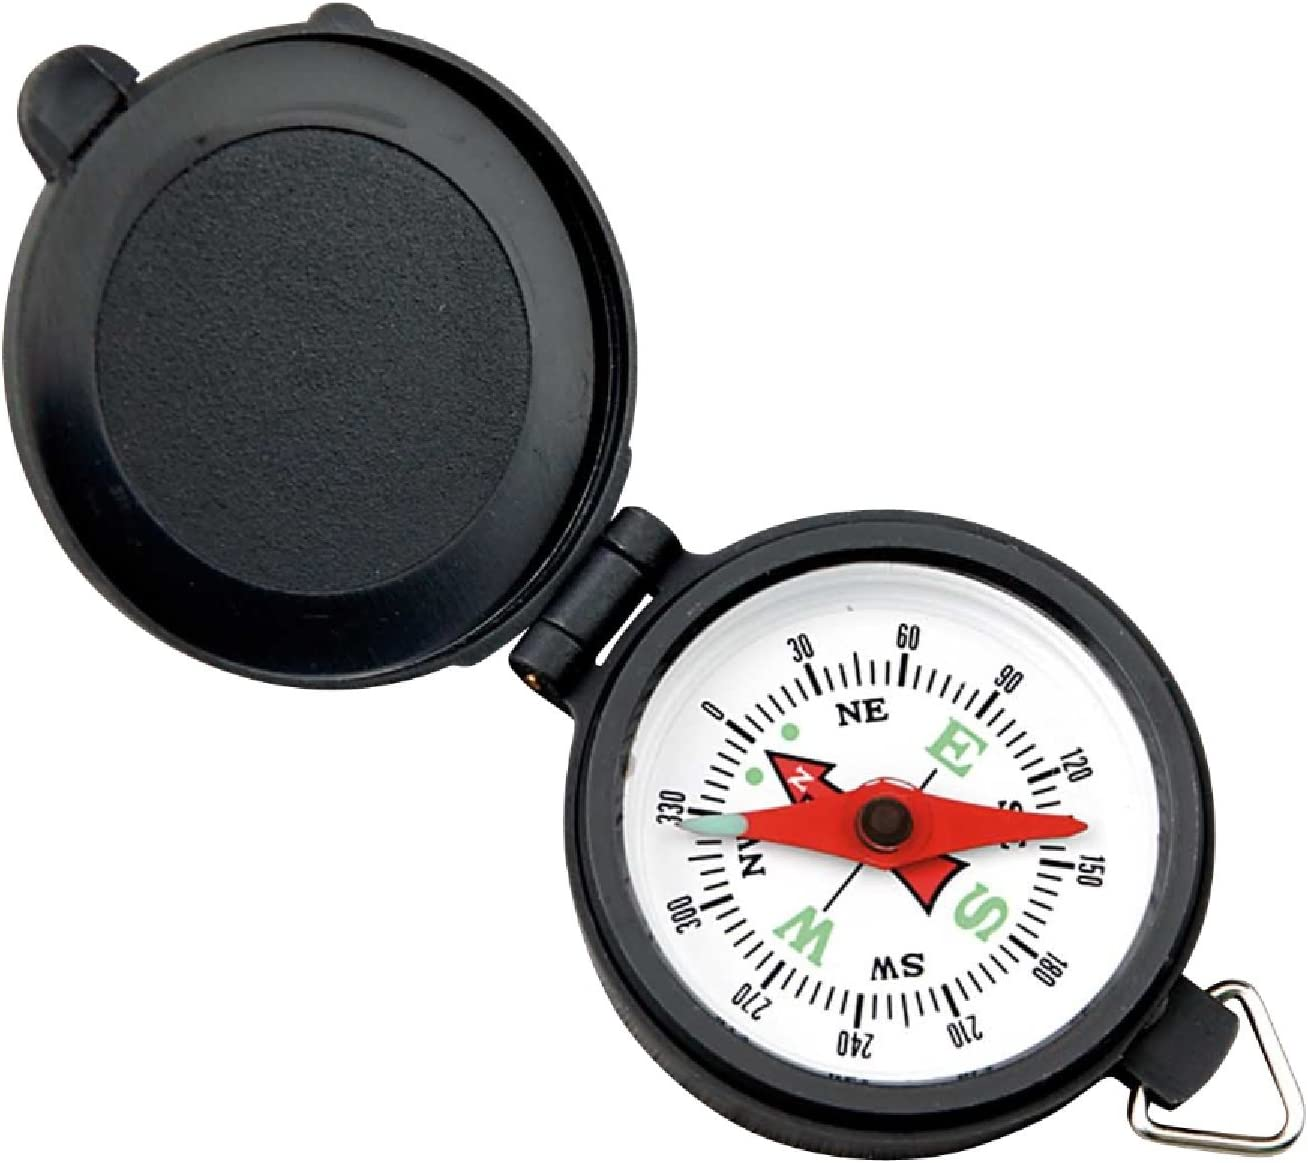 Coleman Company Pocket Austin Mall Compass with Animer and price revision Black Case White Plastic